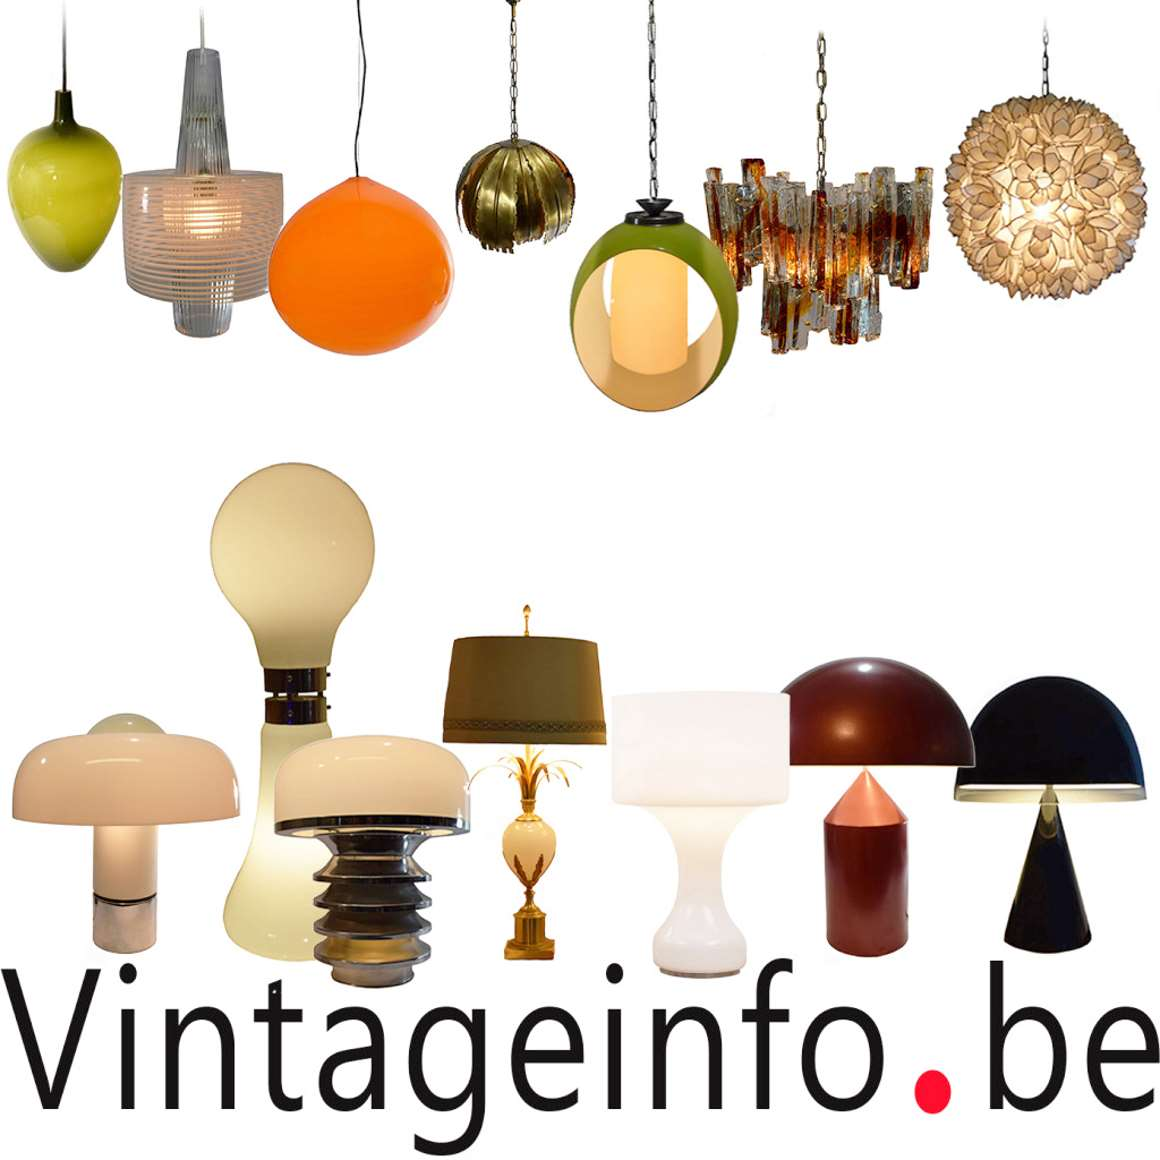 Vintageinfo.be